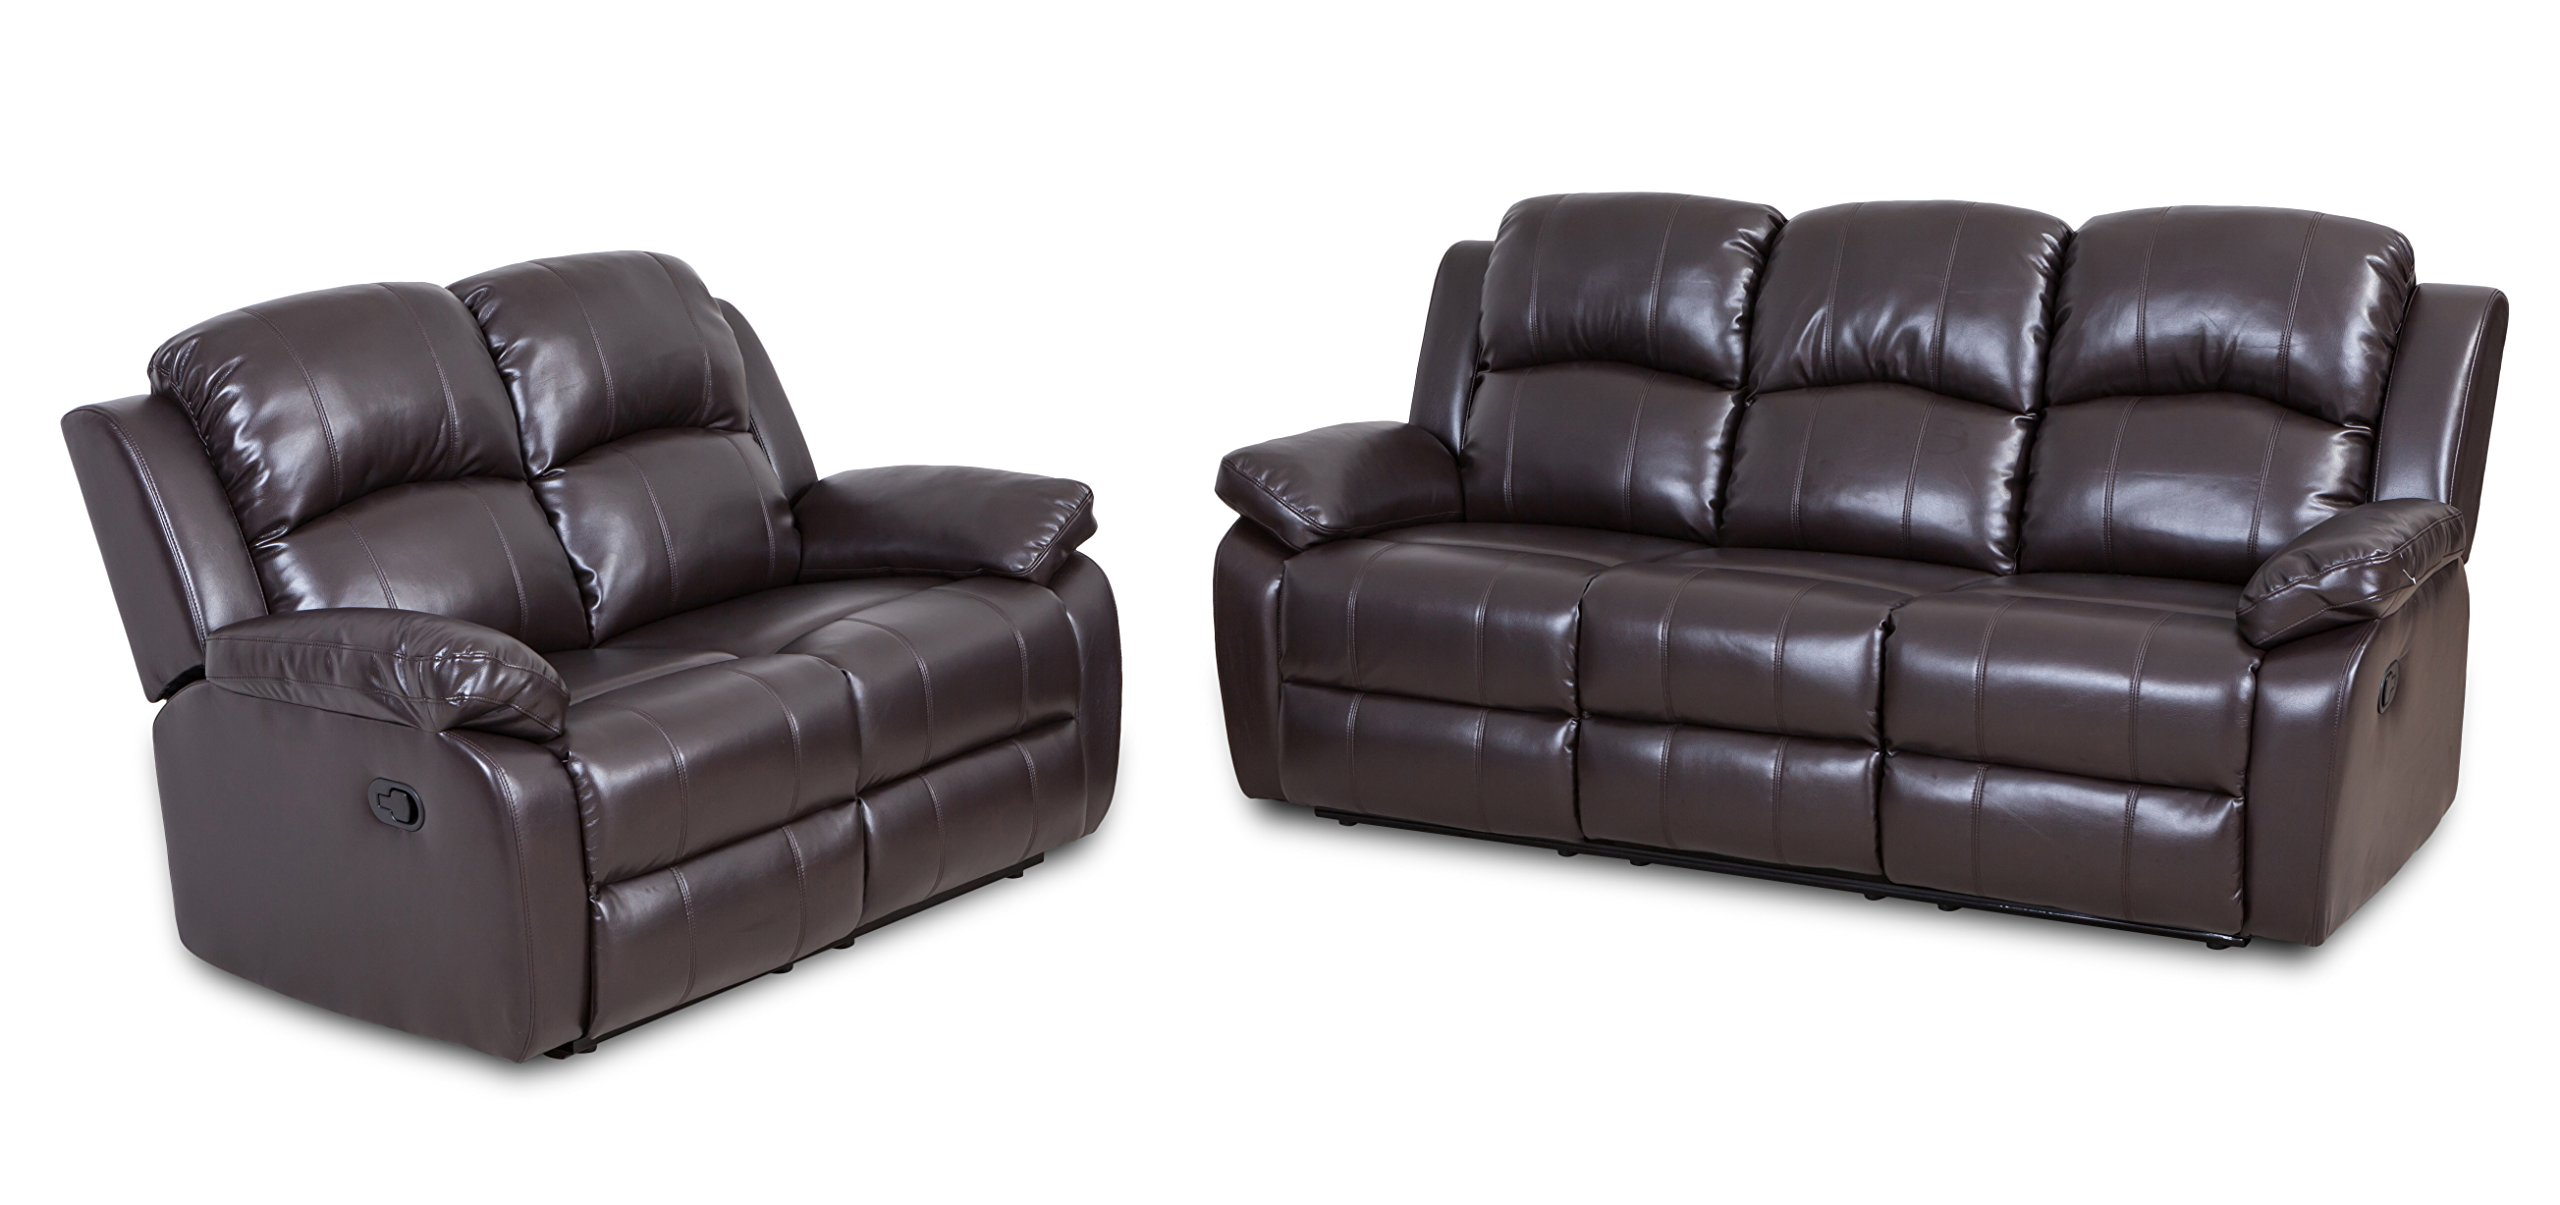 Cheap 3 Seat Recliner Sofa Find 3 Seat Recliner Sofa Deals On Line